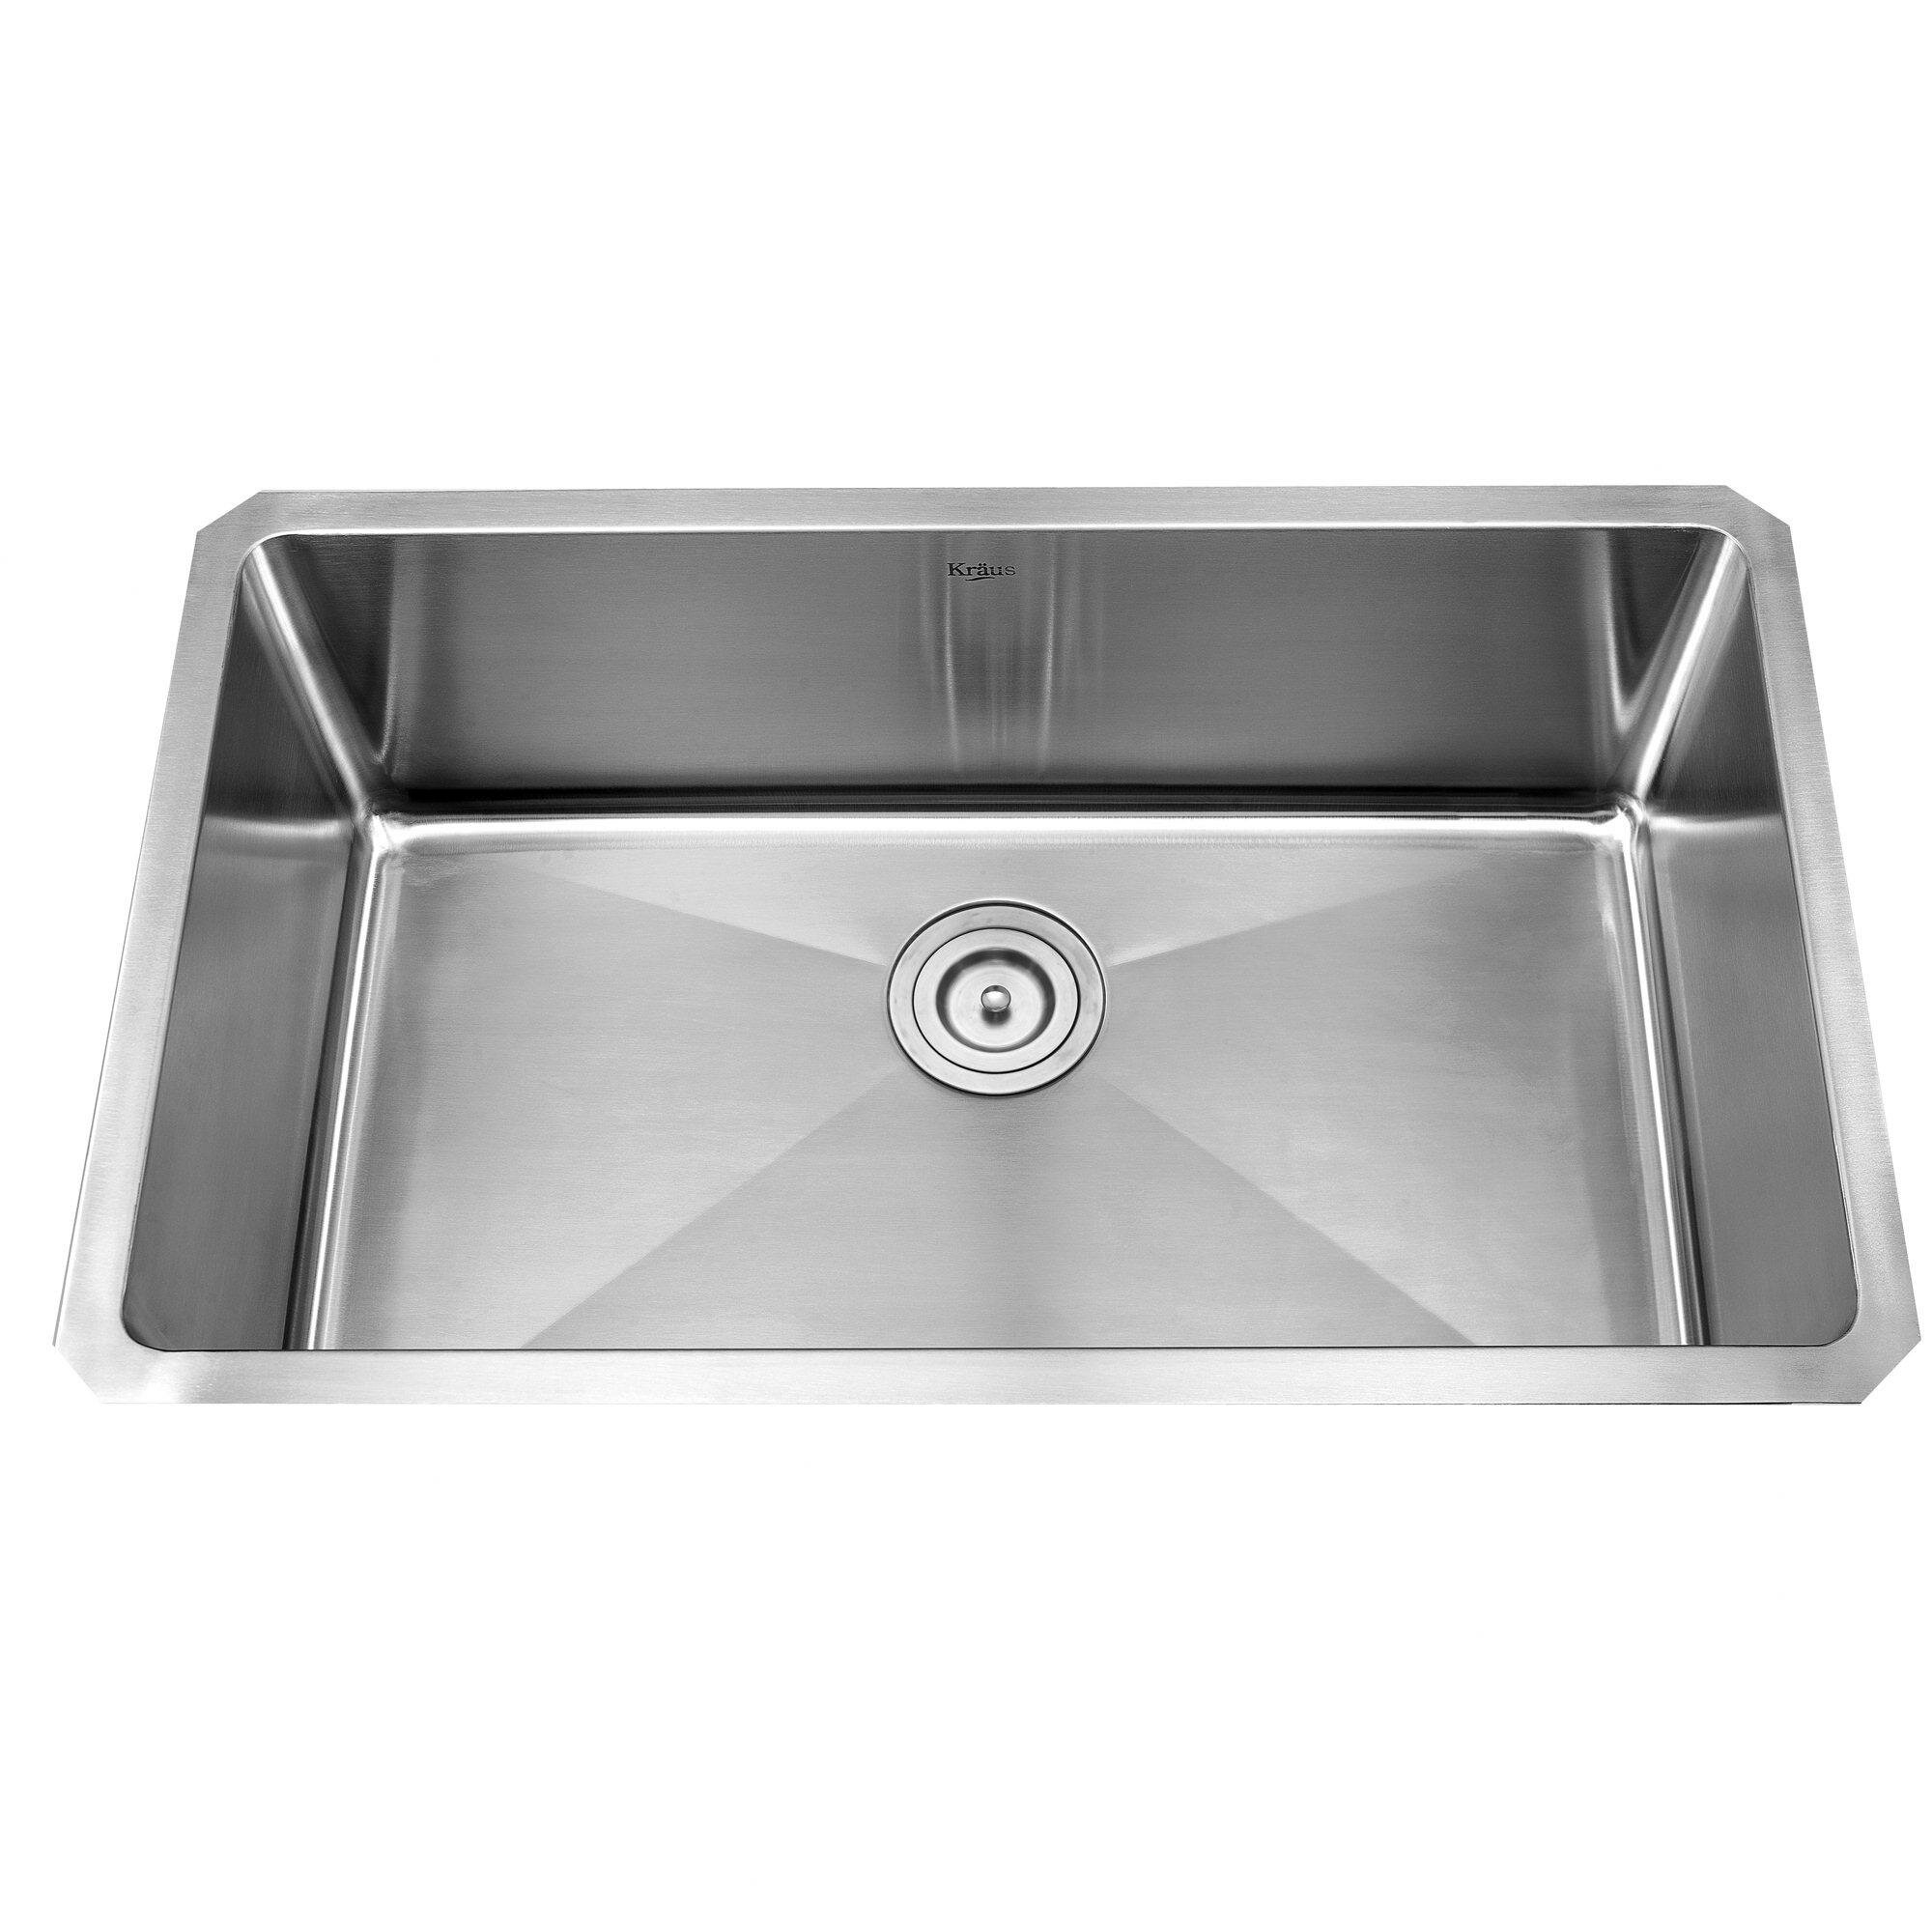 stainless steel single bowl undermount kitchen sink kraus 30 quot x 16 quot undermount single bowl kitchen sink with 9783